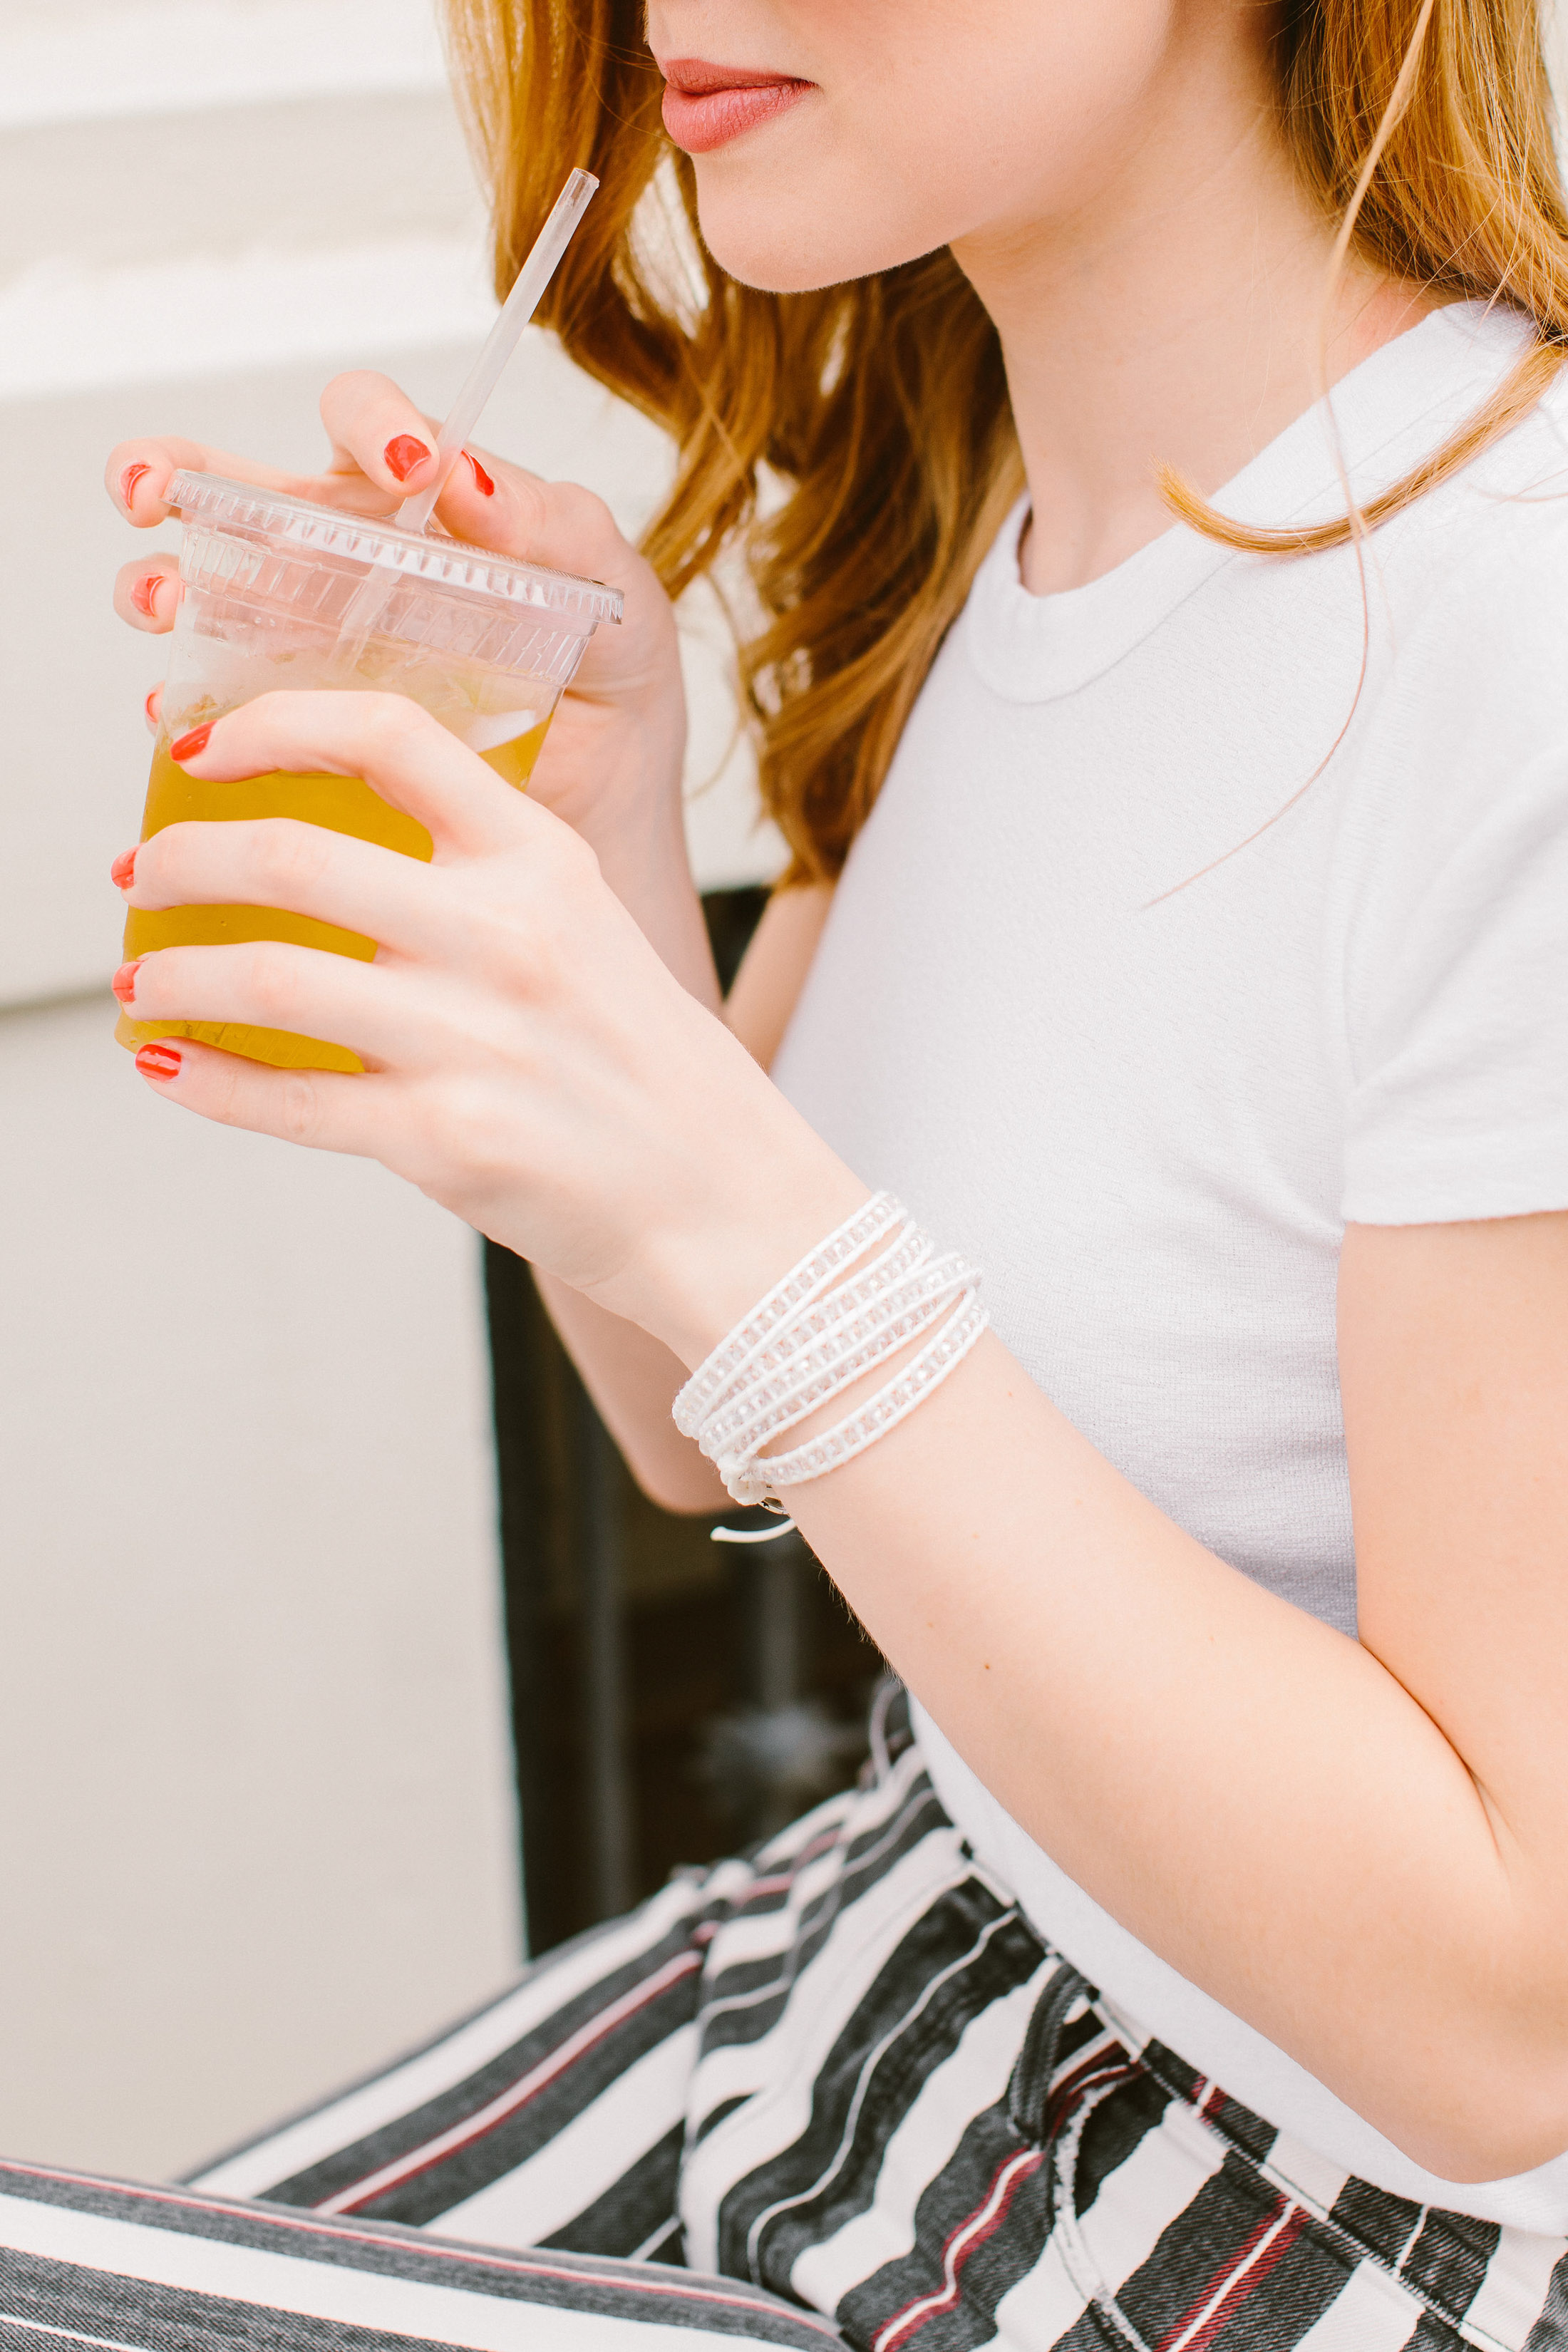 It's Summertime! We're breaking out the Victoria Emerson wrap bracelets —the perfect accessory for beach & vacation travel outfits. Wear 'em like this...